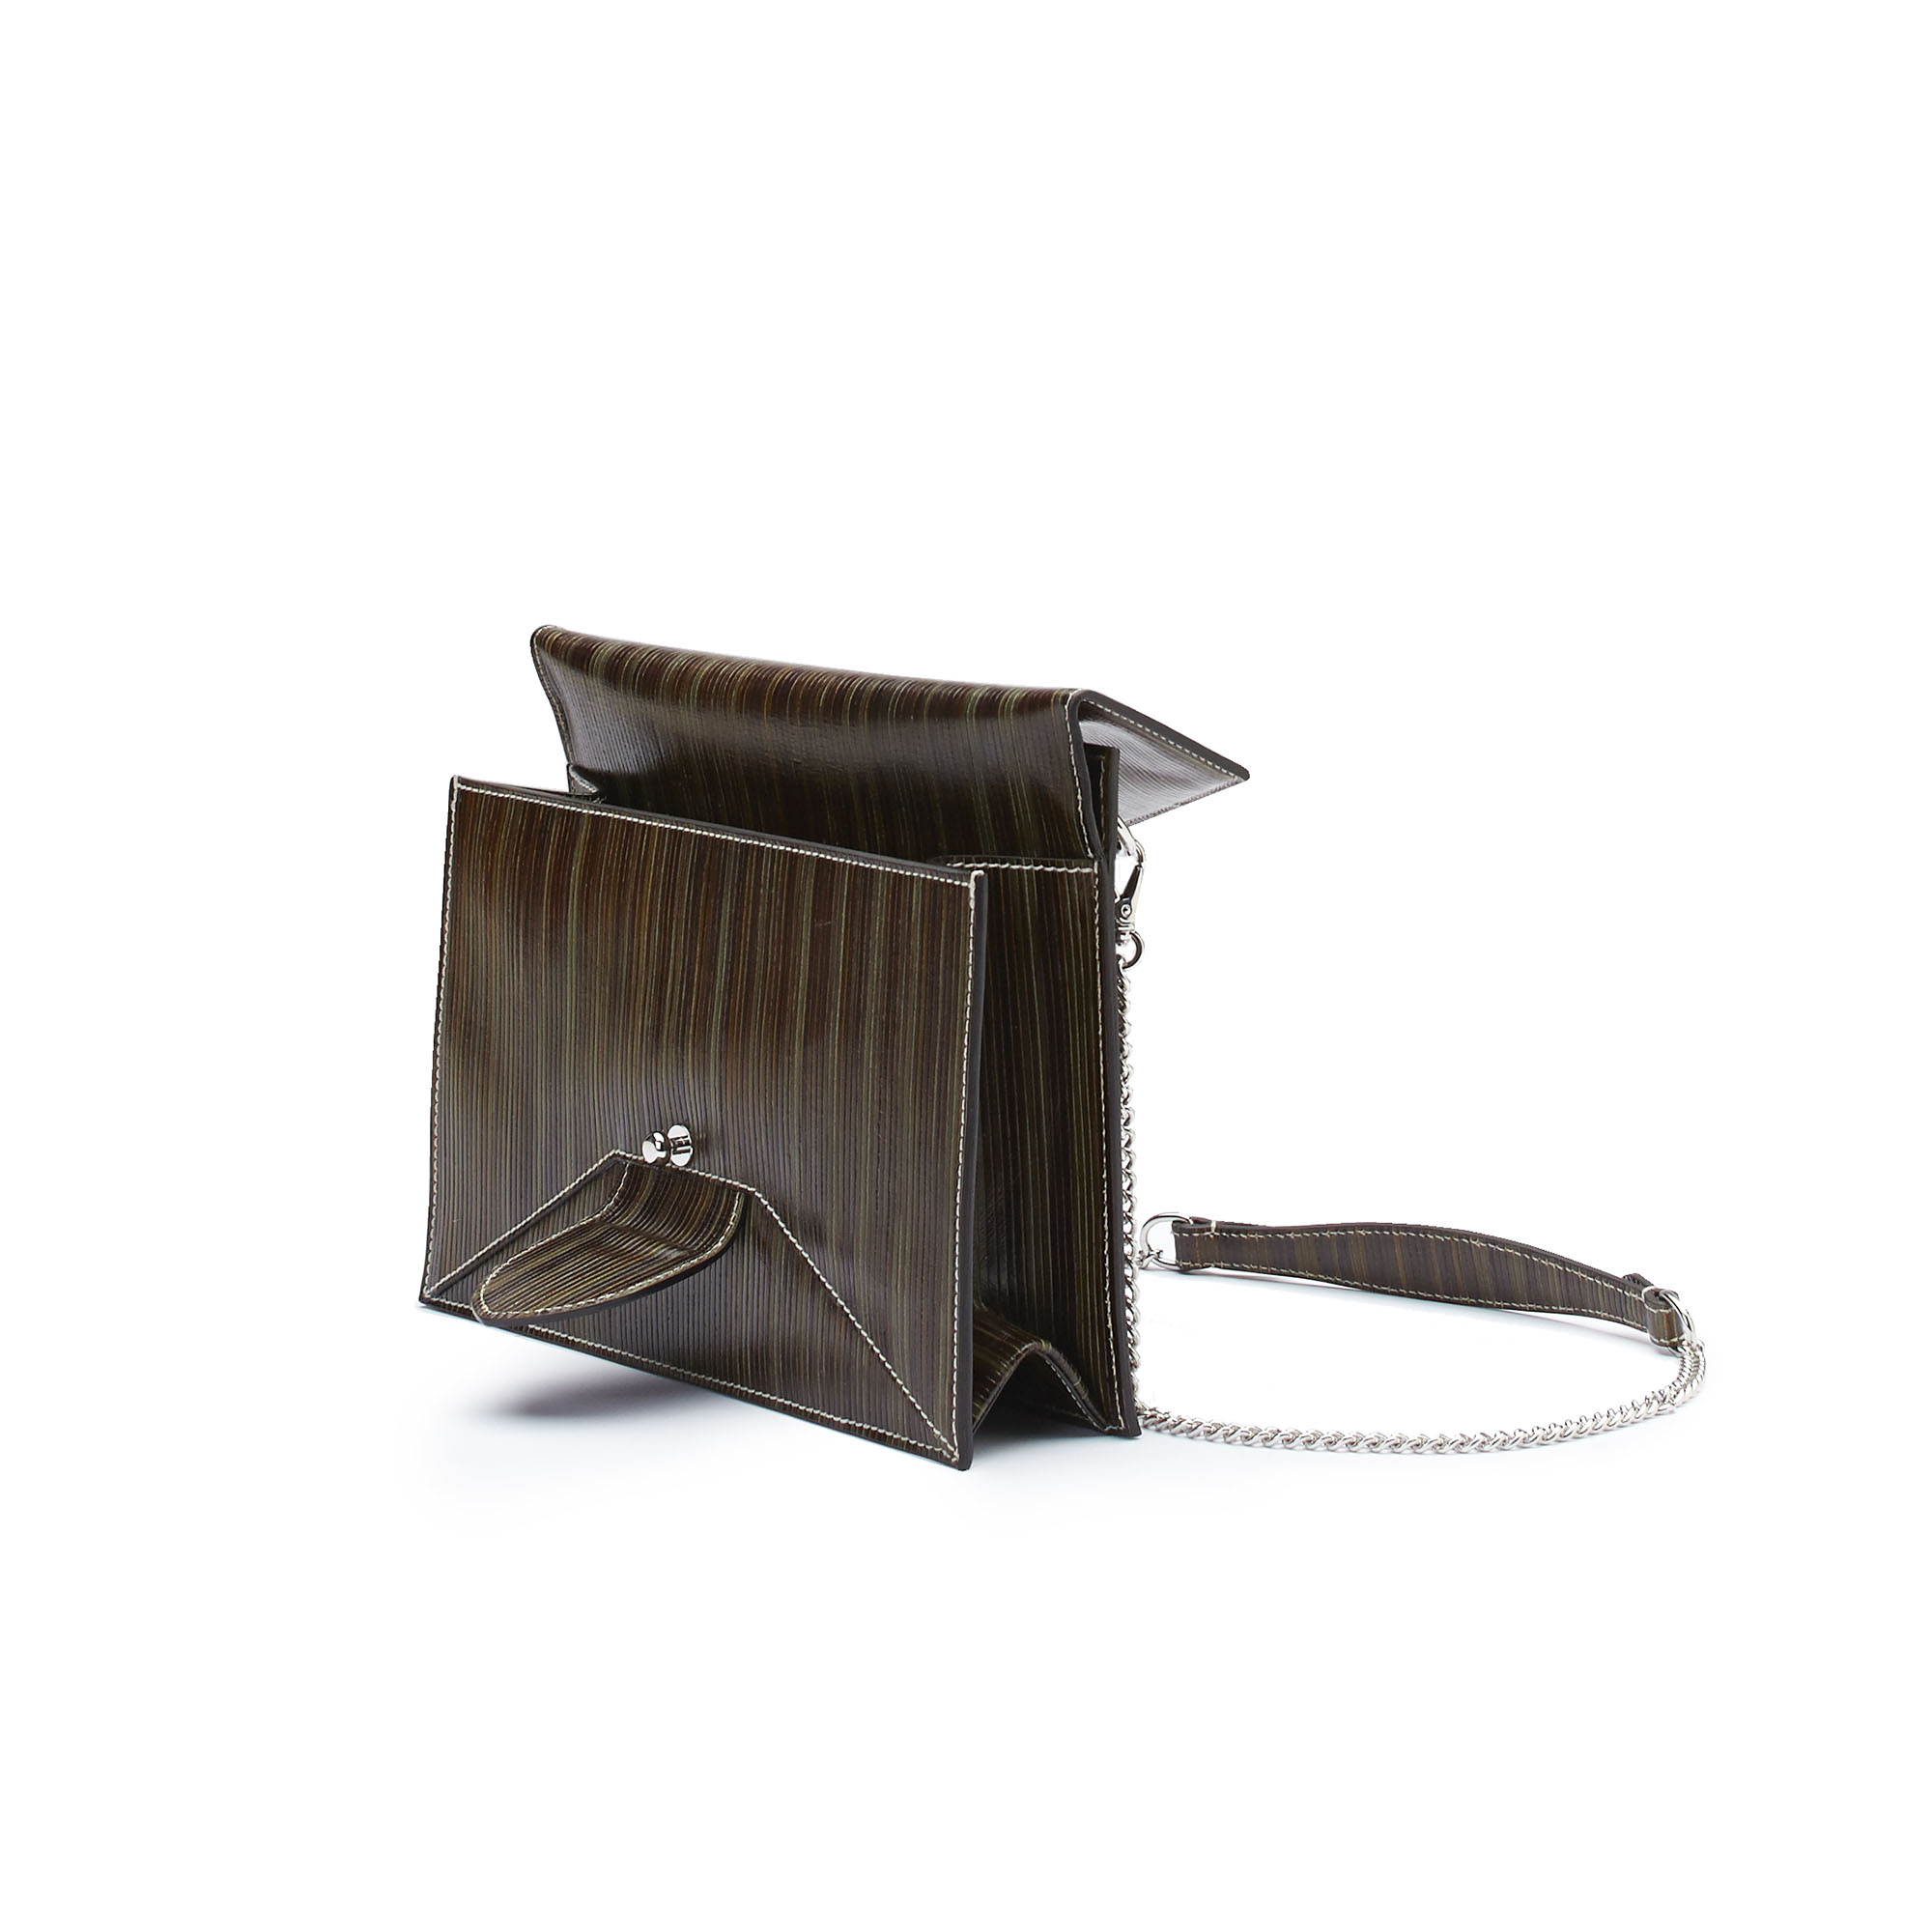 The green wood leather Dafne Chain bag by Bertoni 1949 03